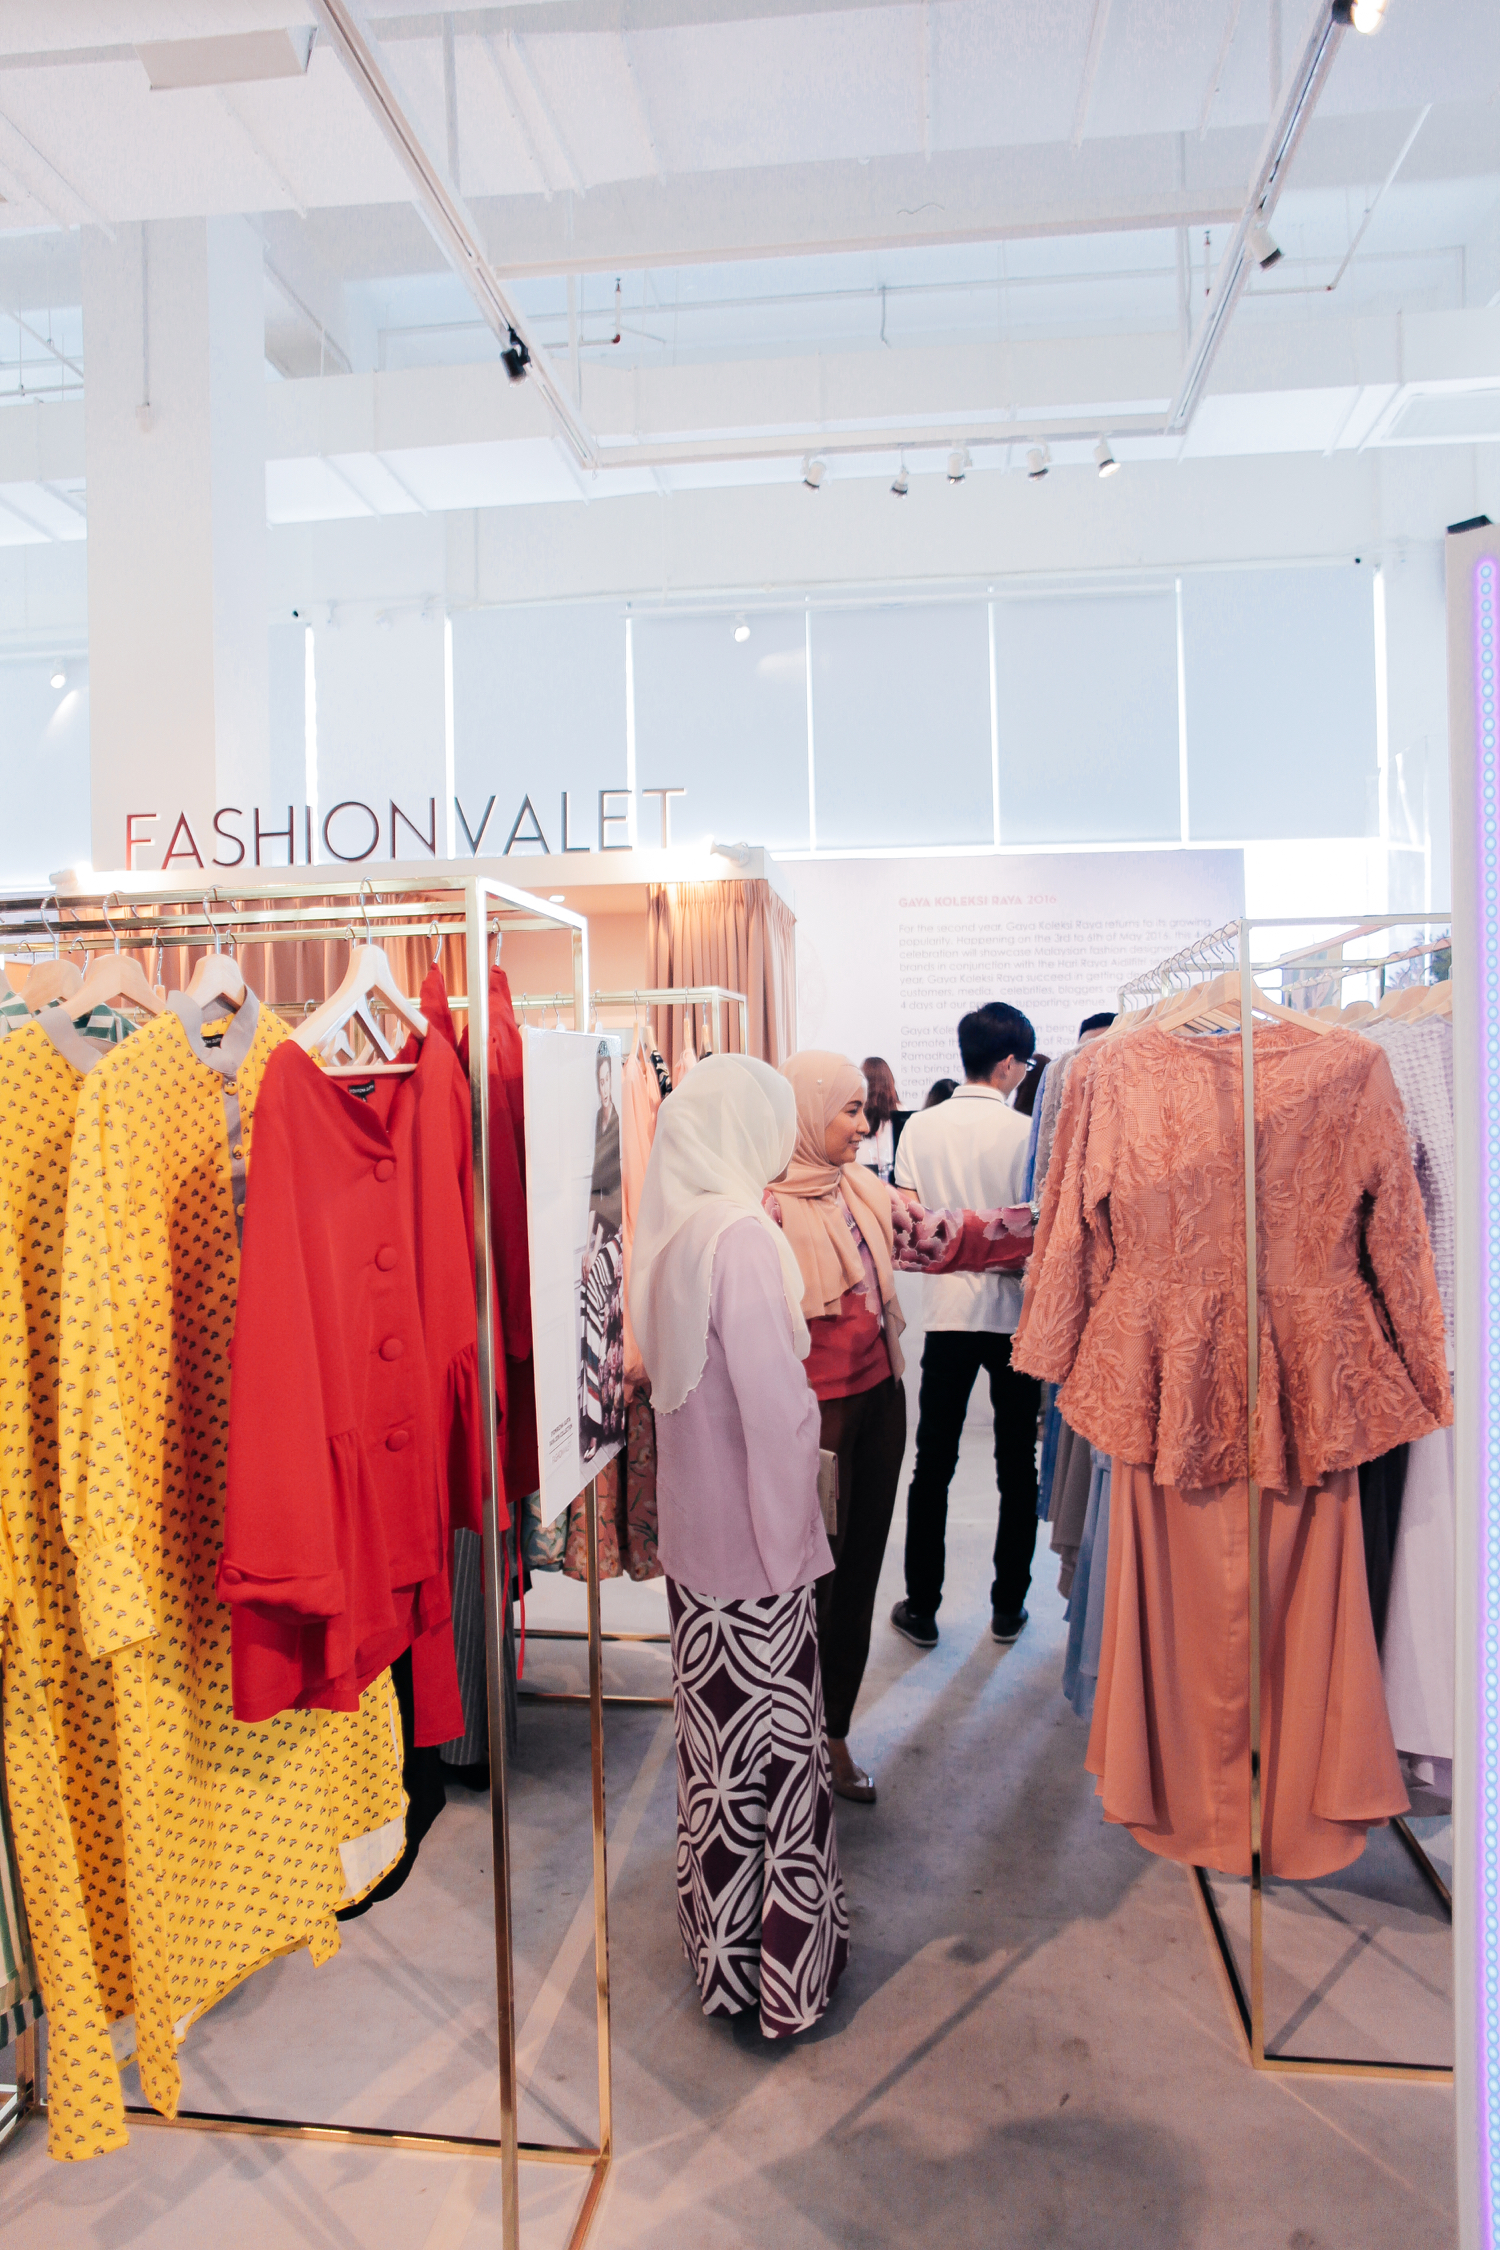 An increase in trend for Ready-to-wear Raya for hassle free shopping. Photo: C-creative